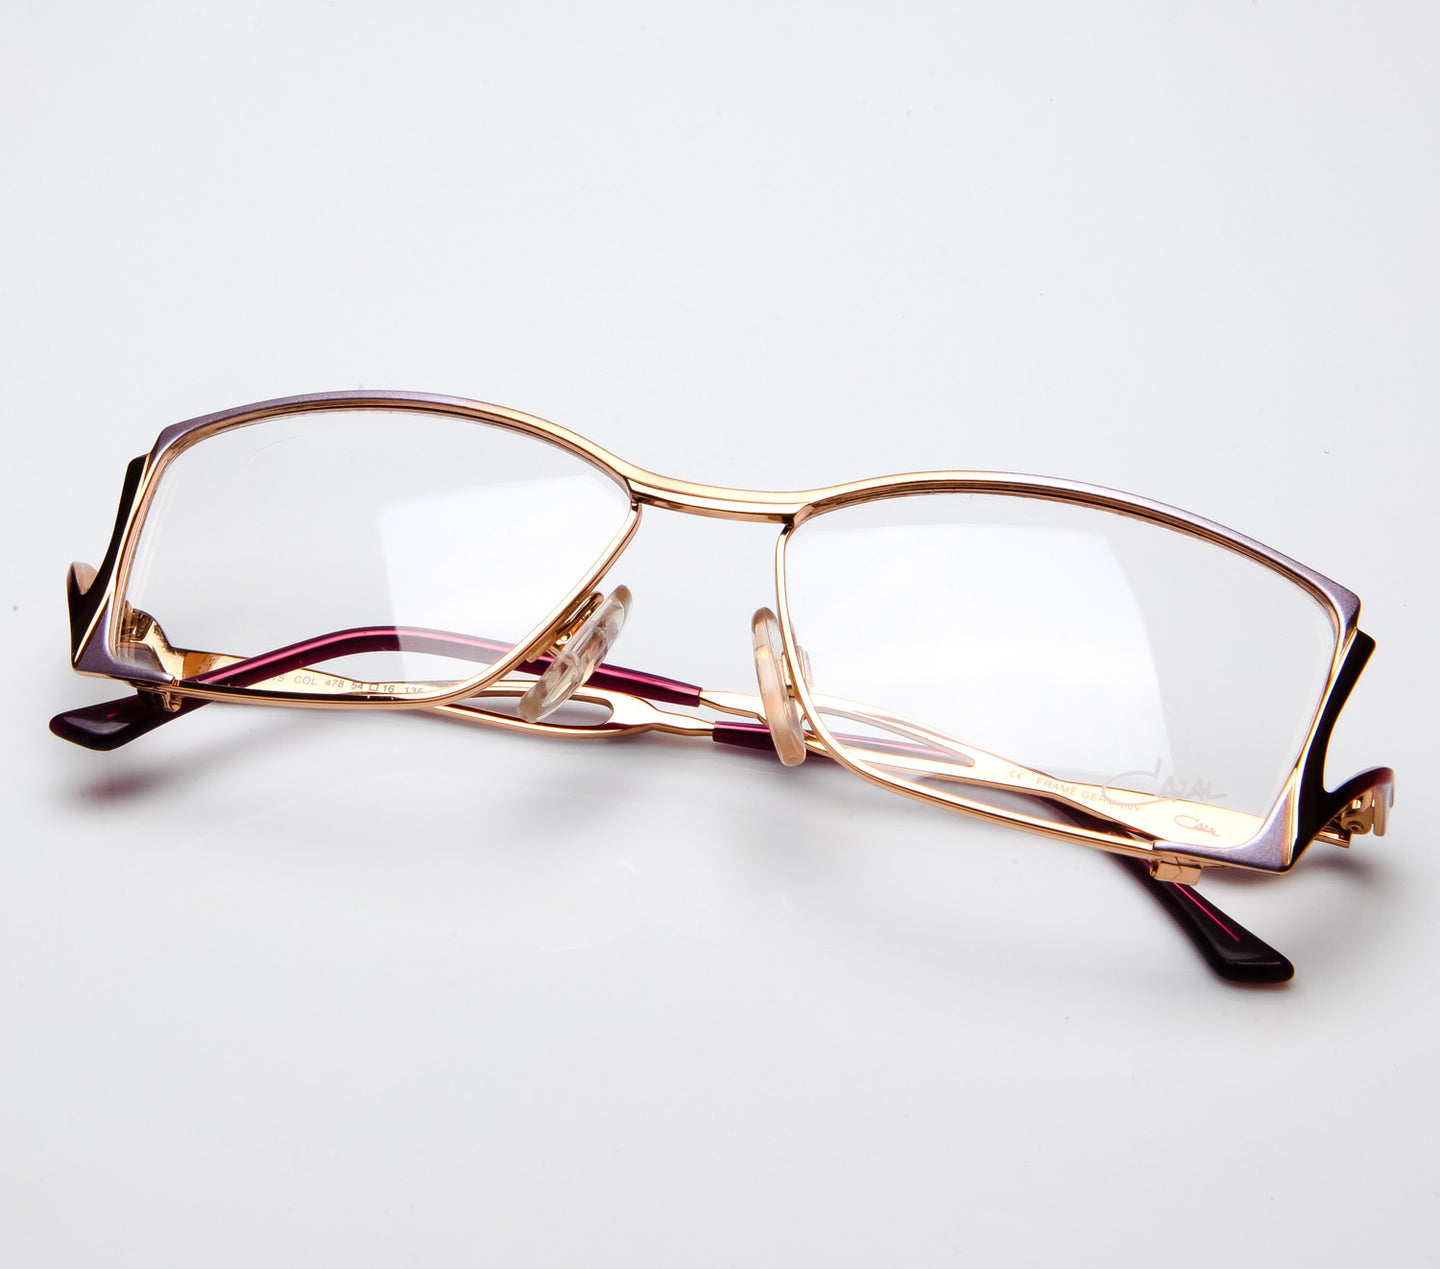 Cazal 175 478, Cazal , glasses frames, eyeglasses online, eyeglass frames, mens glasses, womens glasses, buy glasses online, designer eyeglasses, vintage sunglasses, retro sunglasses, vintage glasses, sunglass, eyeglass, glasses, lens, vintage frames company, vf